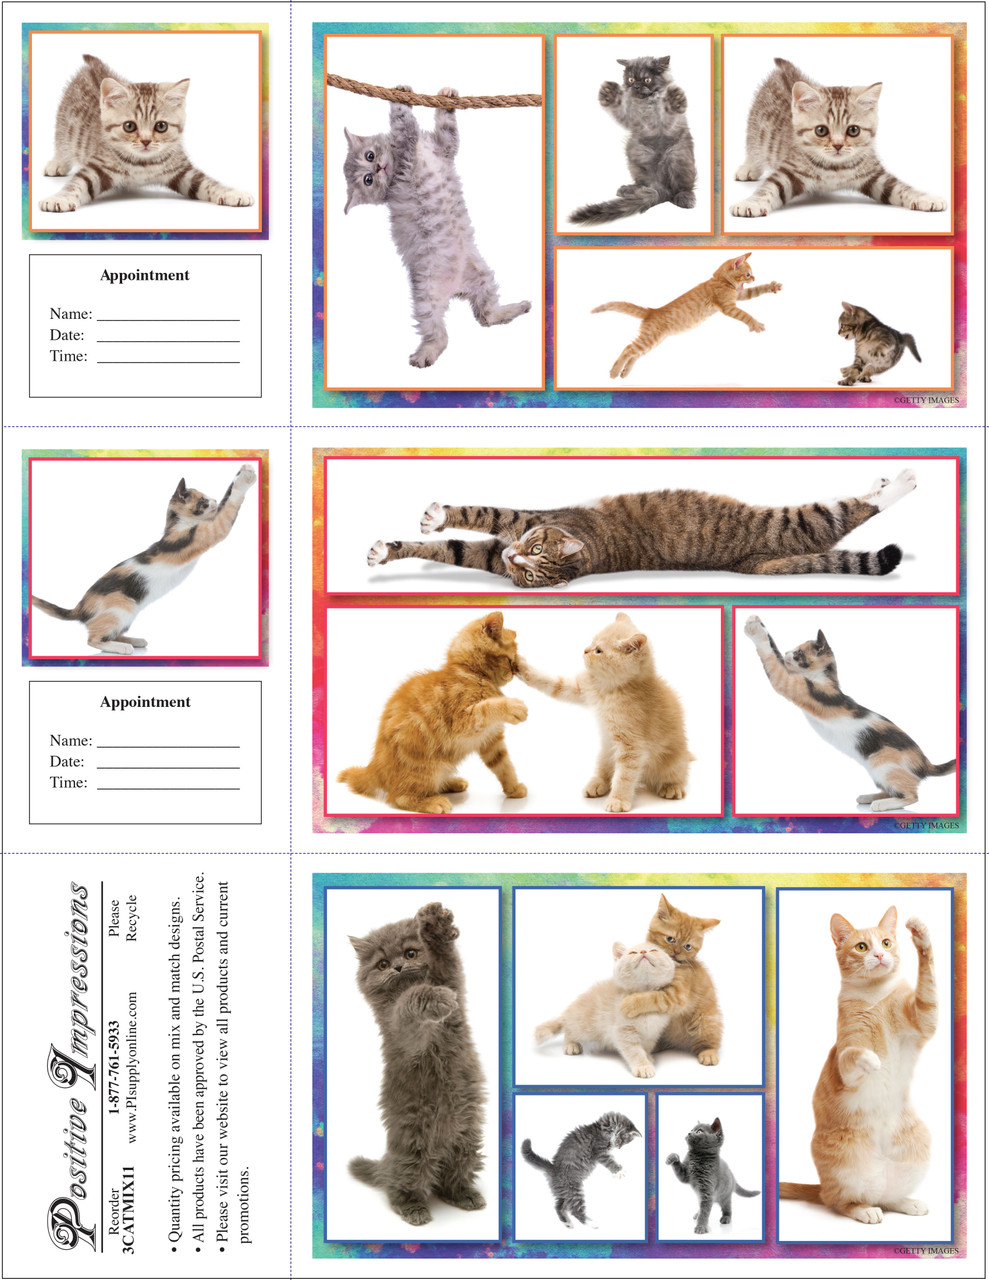 3CATMIX11 - 3 Up Reminder Cards